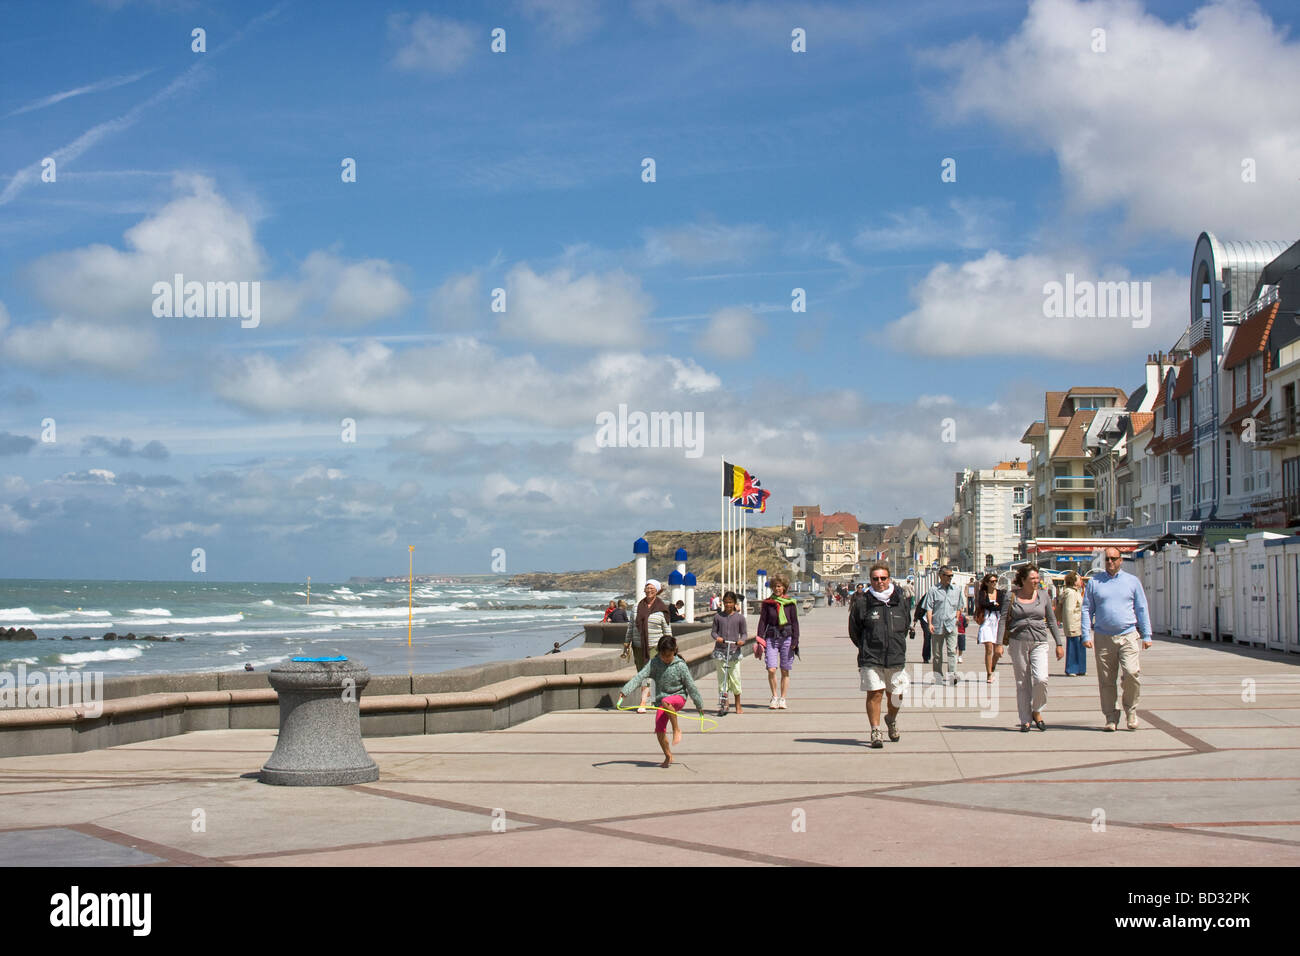 The Promenade at Wimereux France, on the North Coast - Stock Image